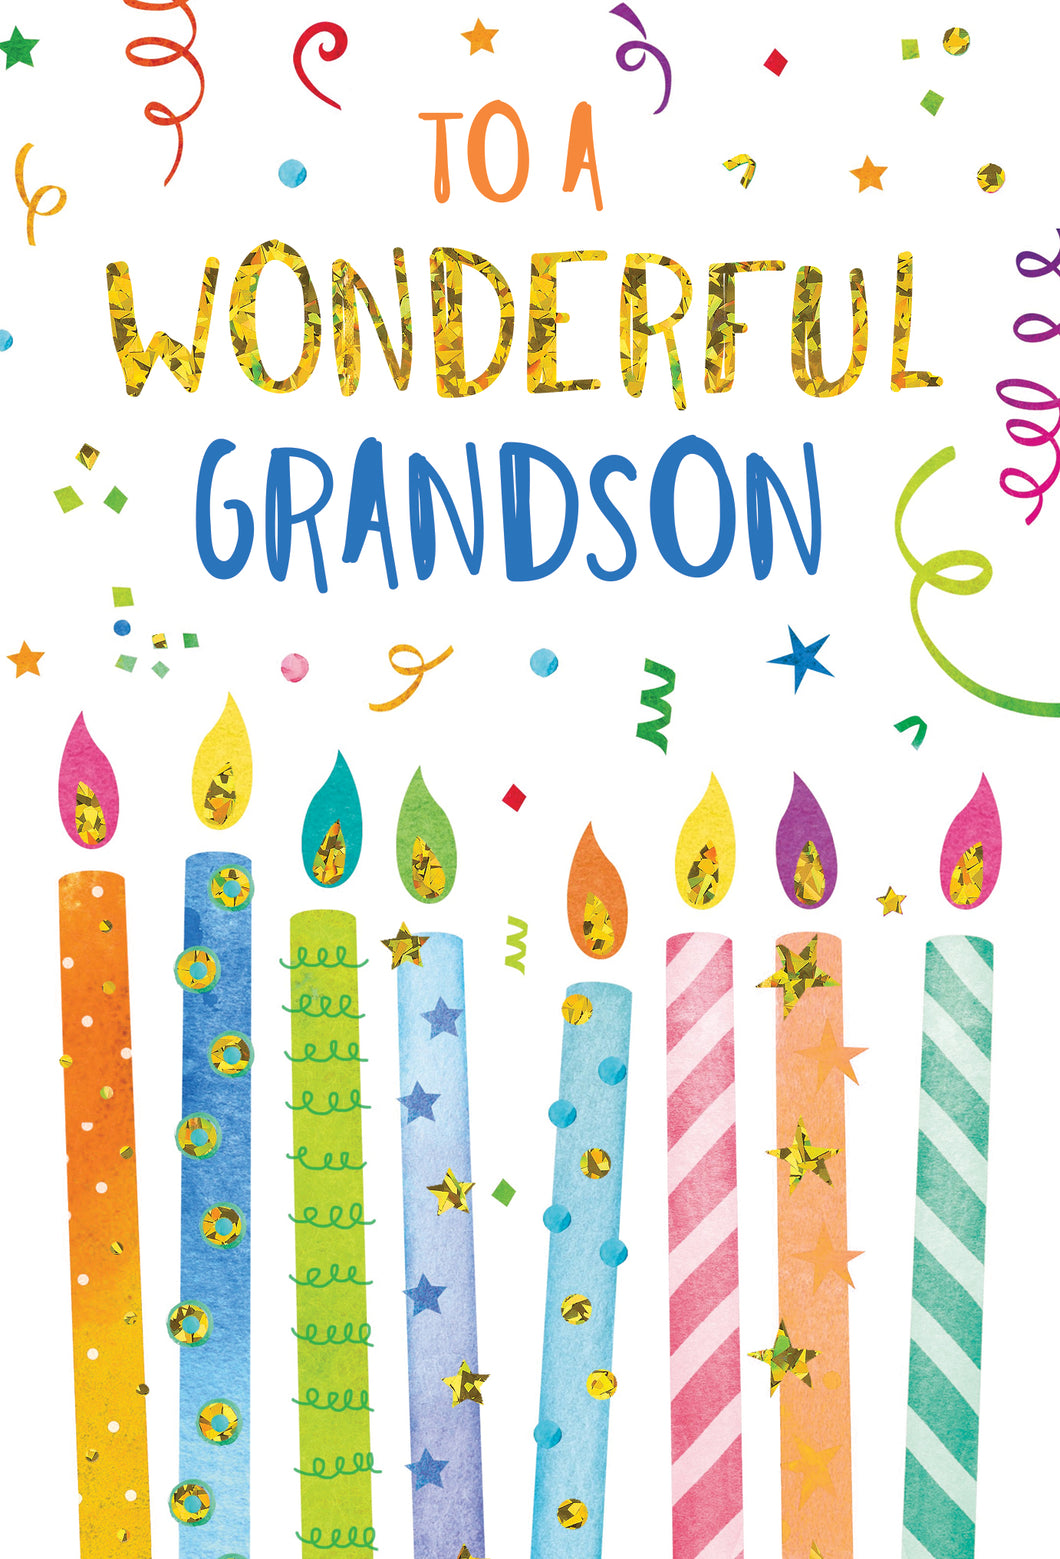 Birthday Grandson Card Candles And Confetti